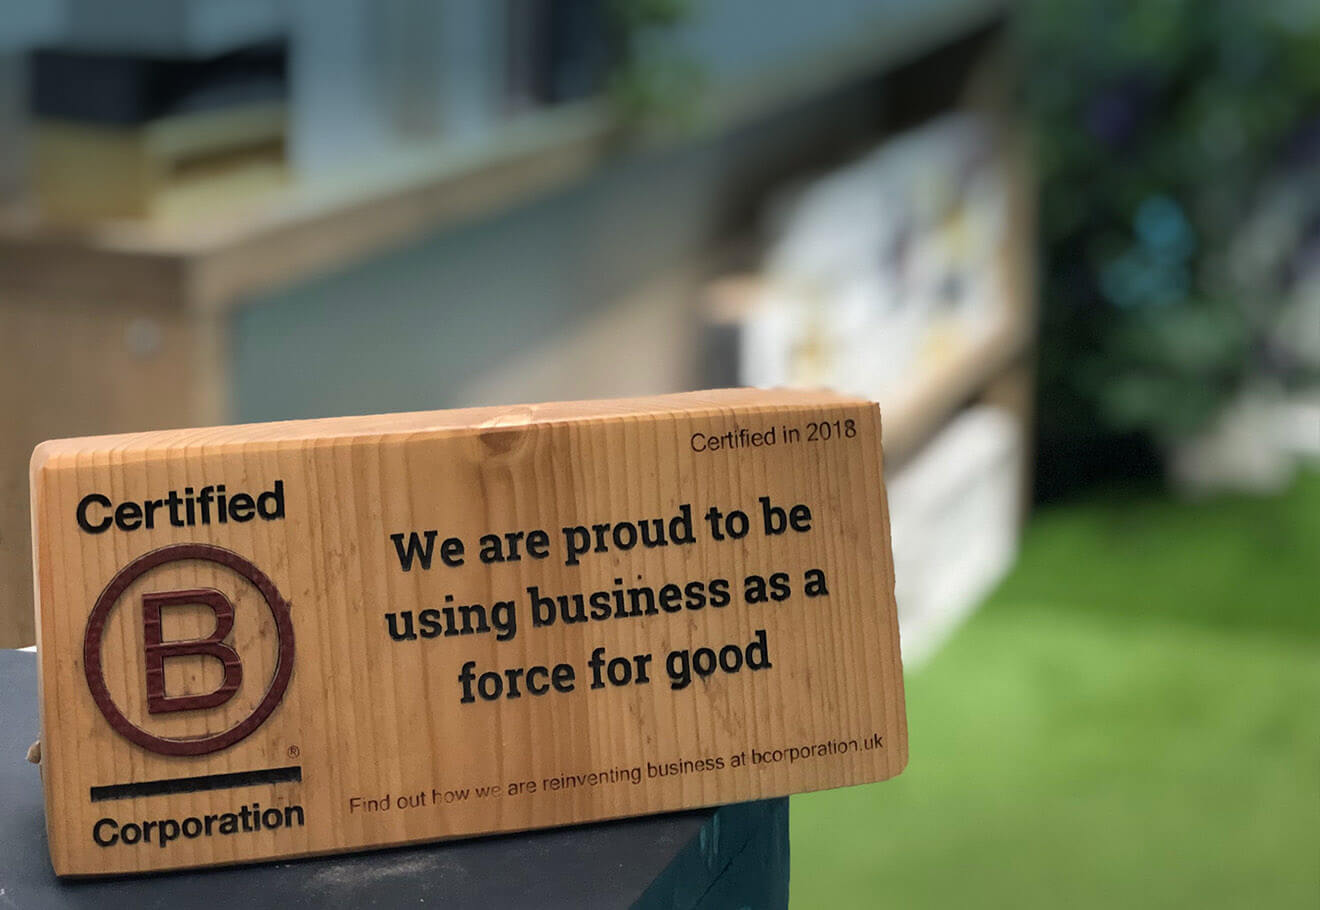 B Corp Certification Sign